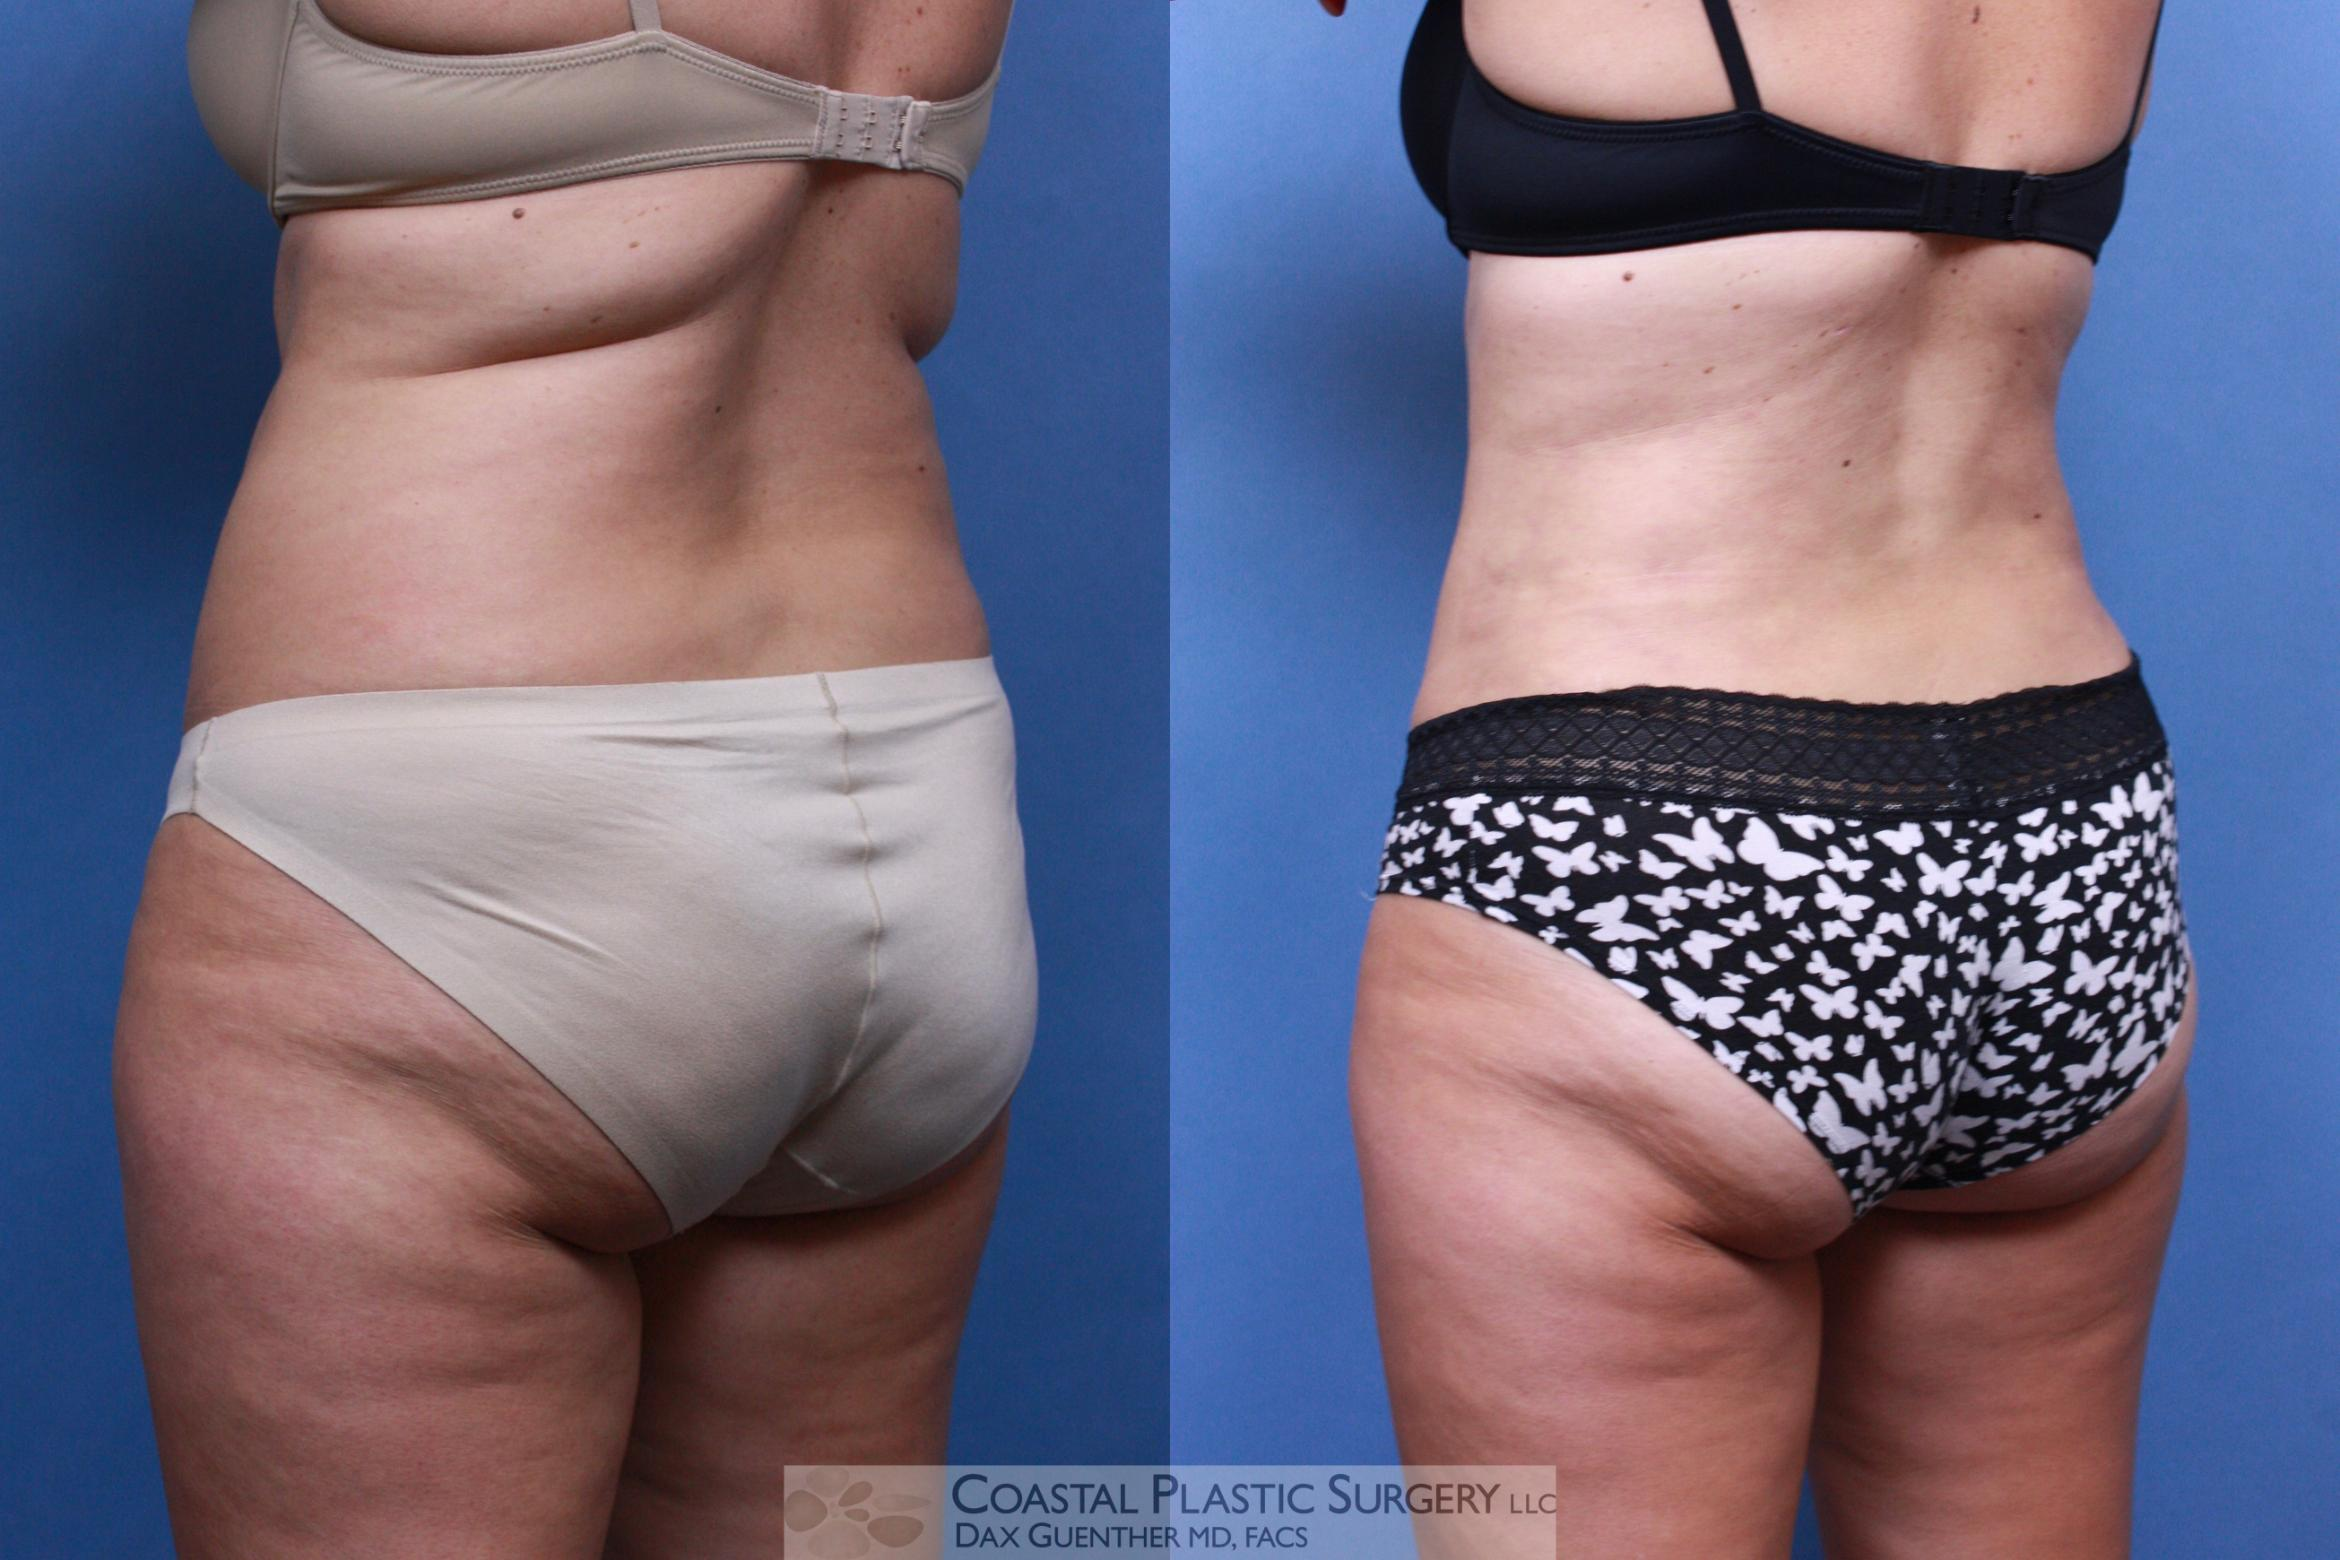 Liposuction Before & After Photo | Hingham, MA | Dax Guenther, MD: Coastal Plastic Surgery